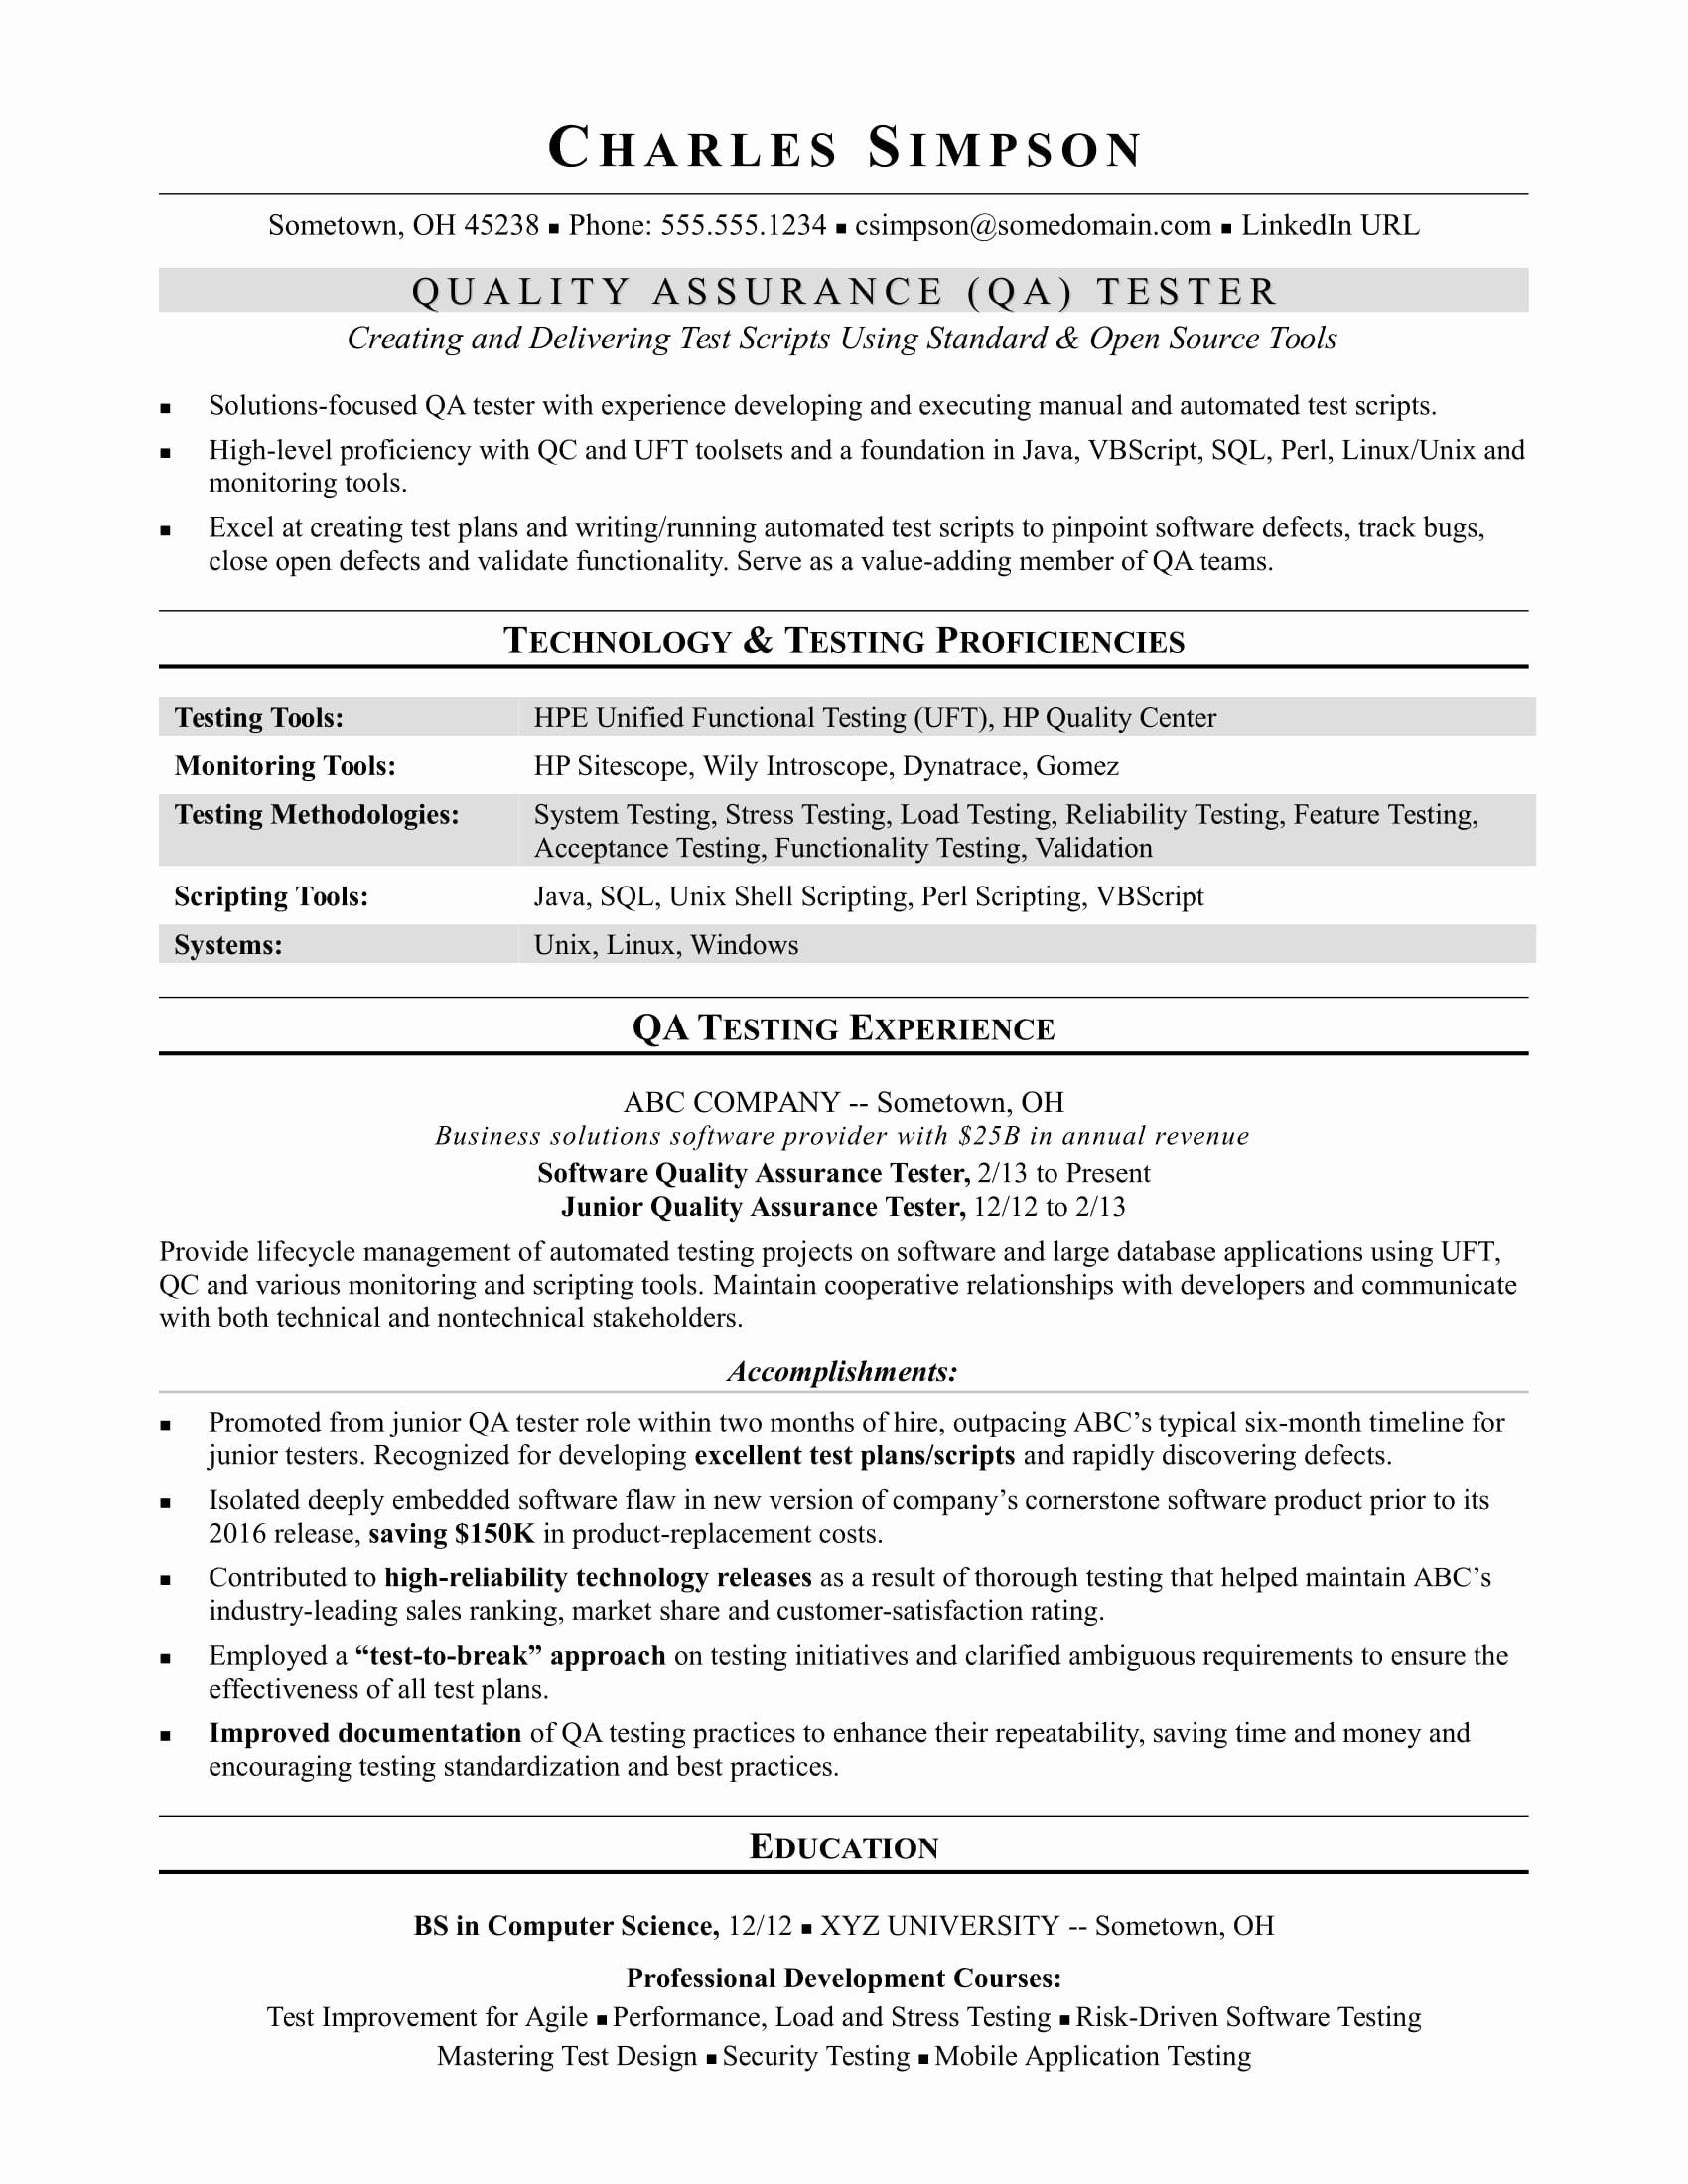 Entry Level Qa Tester Resume Unique Jobs Las Vegas Review Journal In 2020 Resume Examples Cv Examples Job Resume Examples